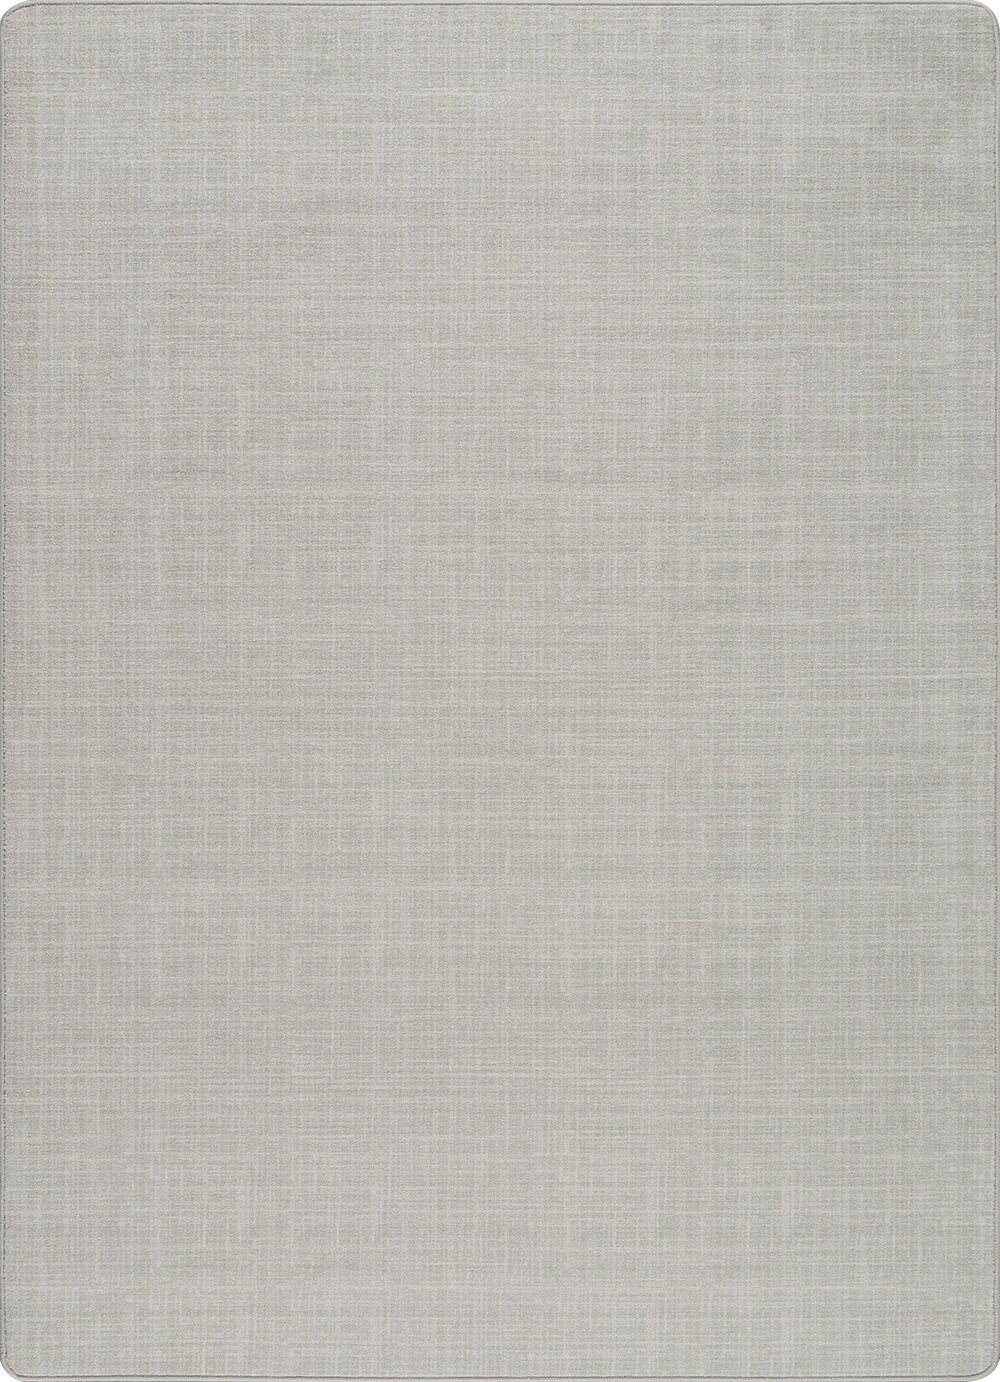 Broom Pale Pewter Area Rug Rug Size: Rectangle 5'4